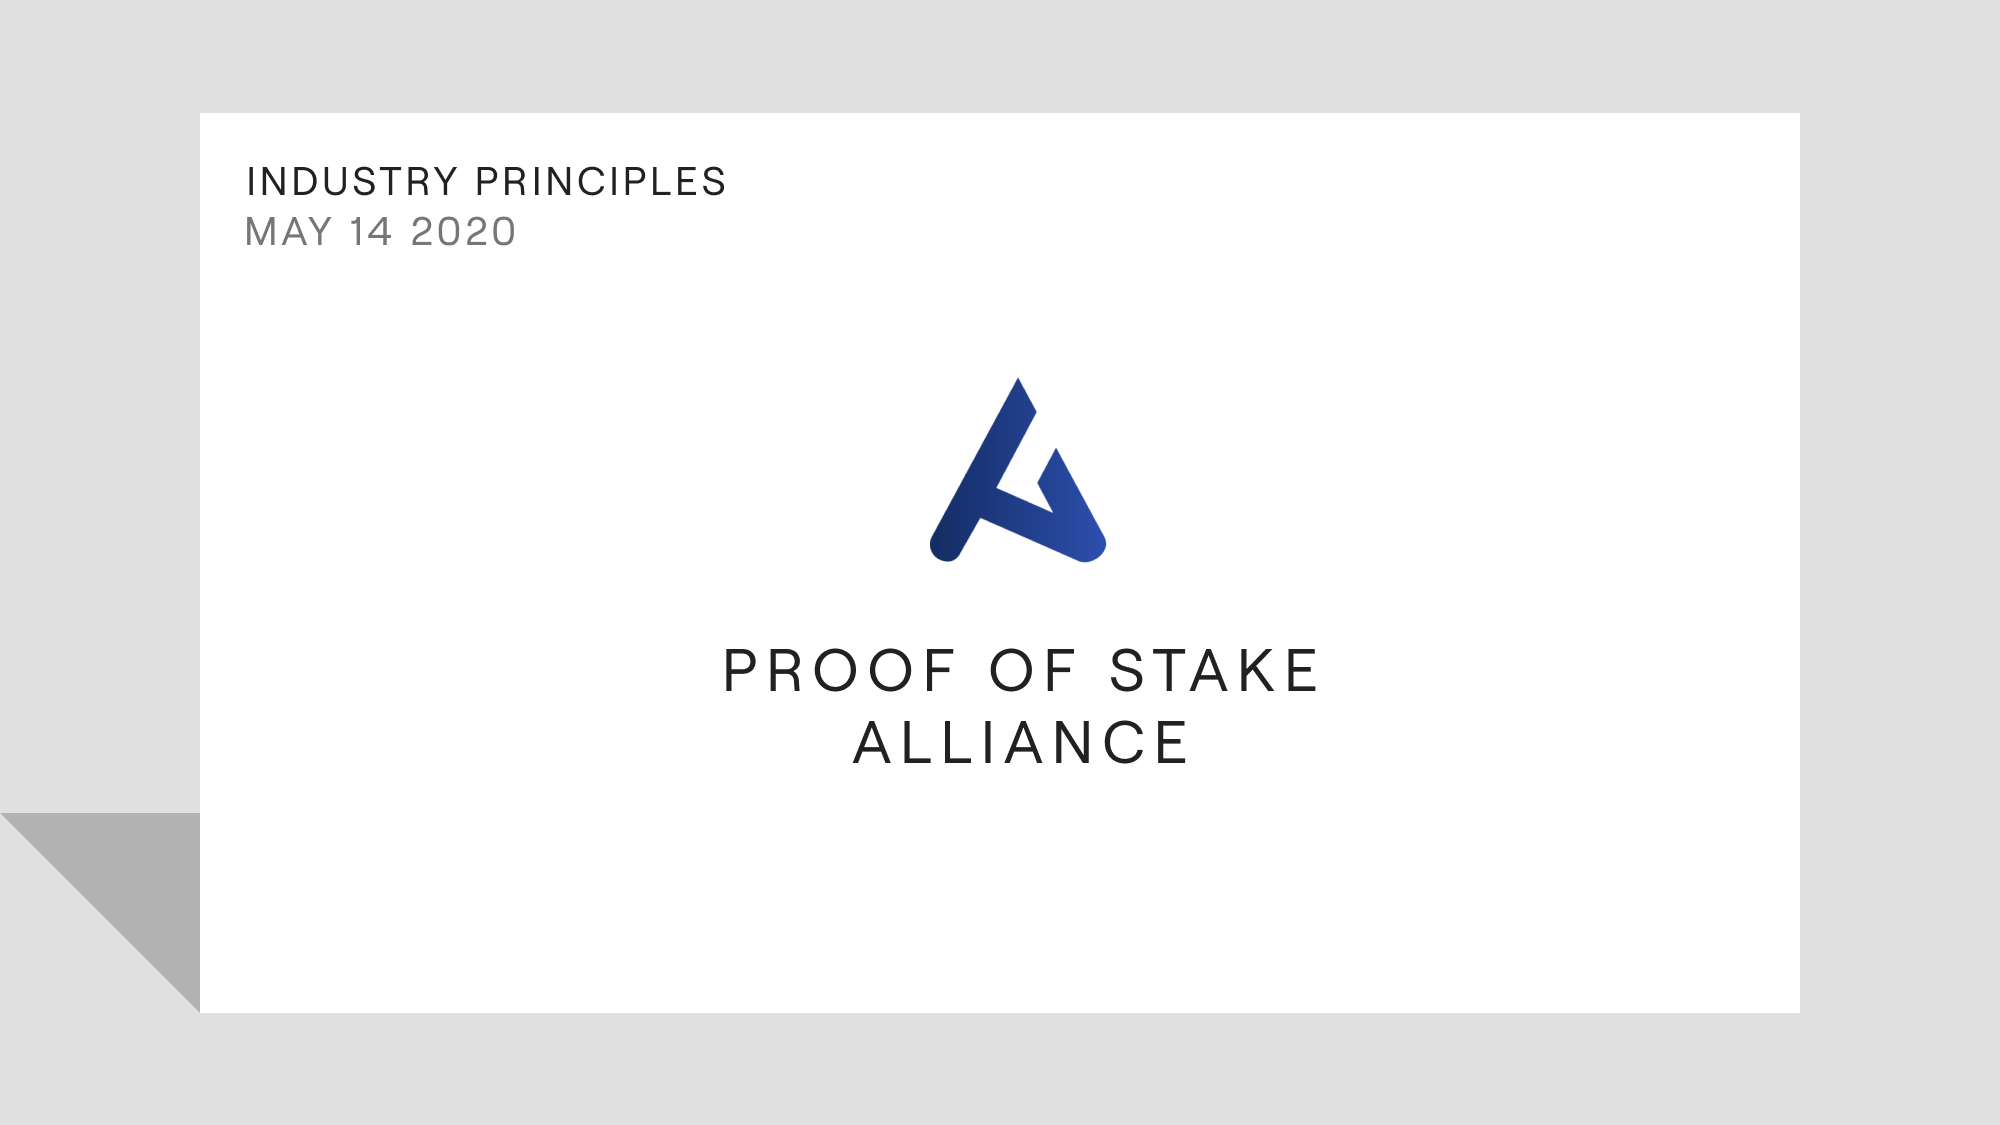 Industry Leaders Collaborate to Create Principles to Guide Staking Providers